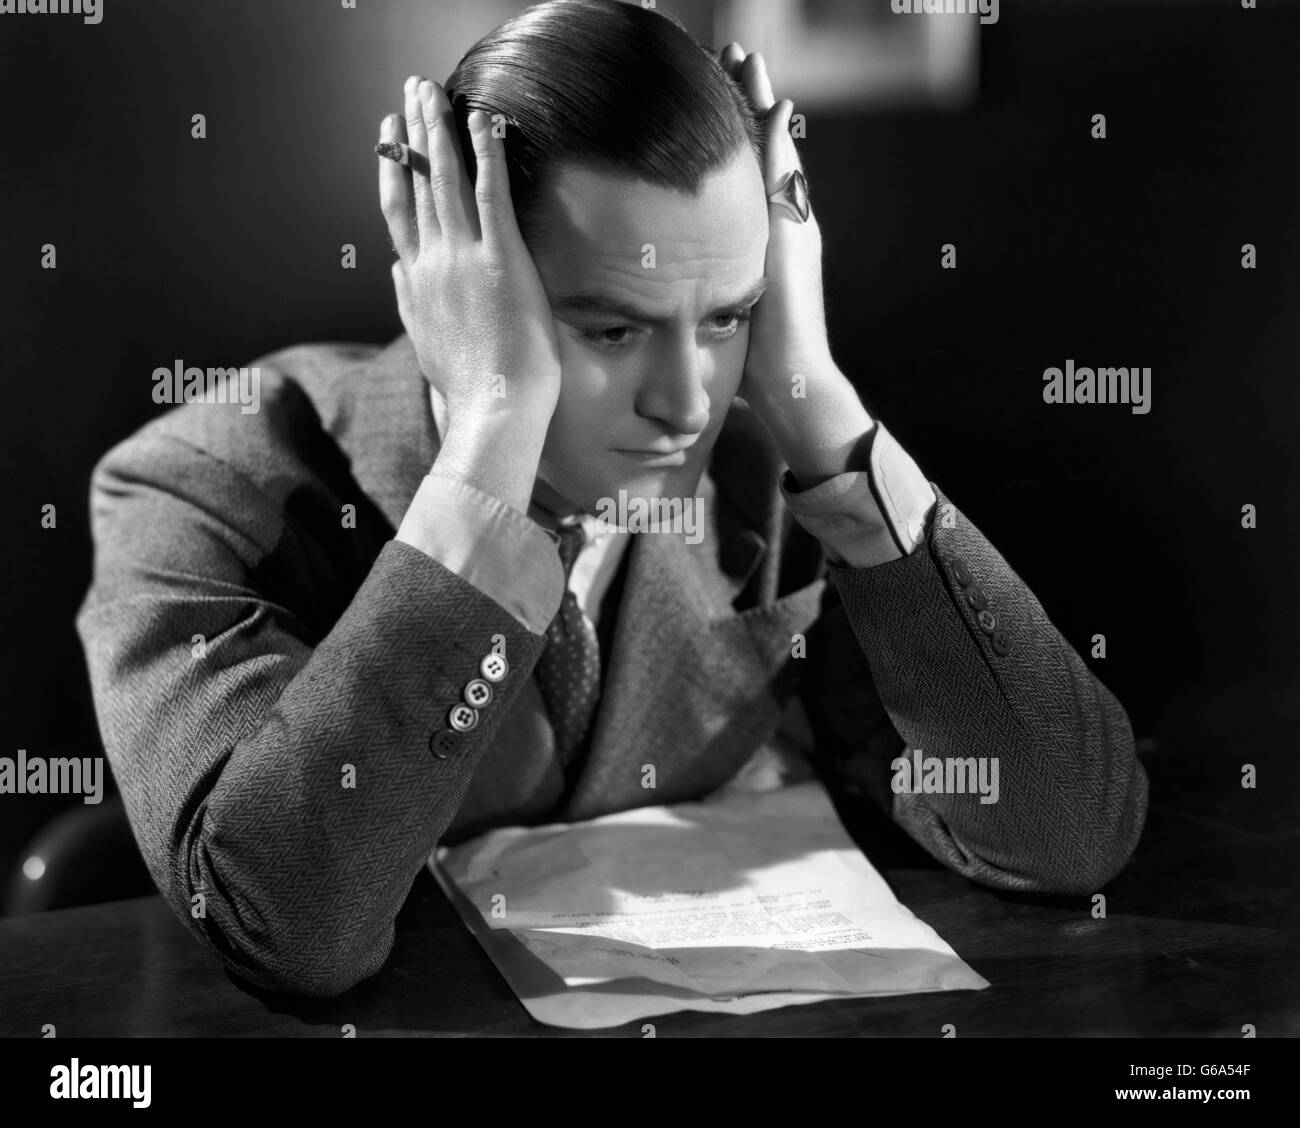 1930s DEPRESSED BUSINESS MAN HOLDING HEAD UP WITH HIS HANDS OVER HIS EARS - Stock Image